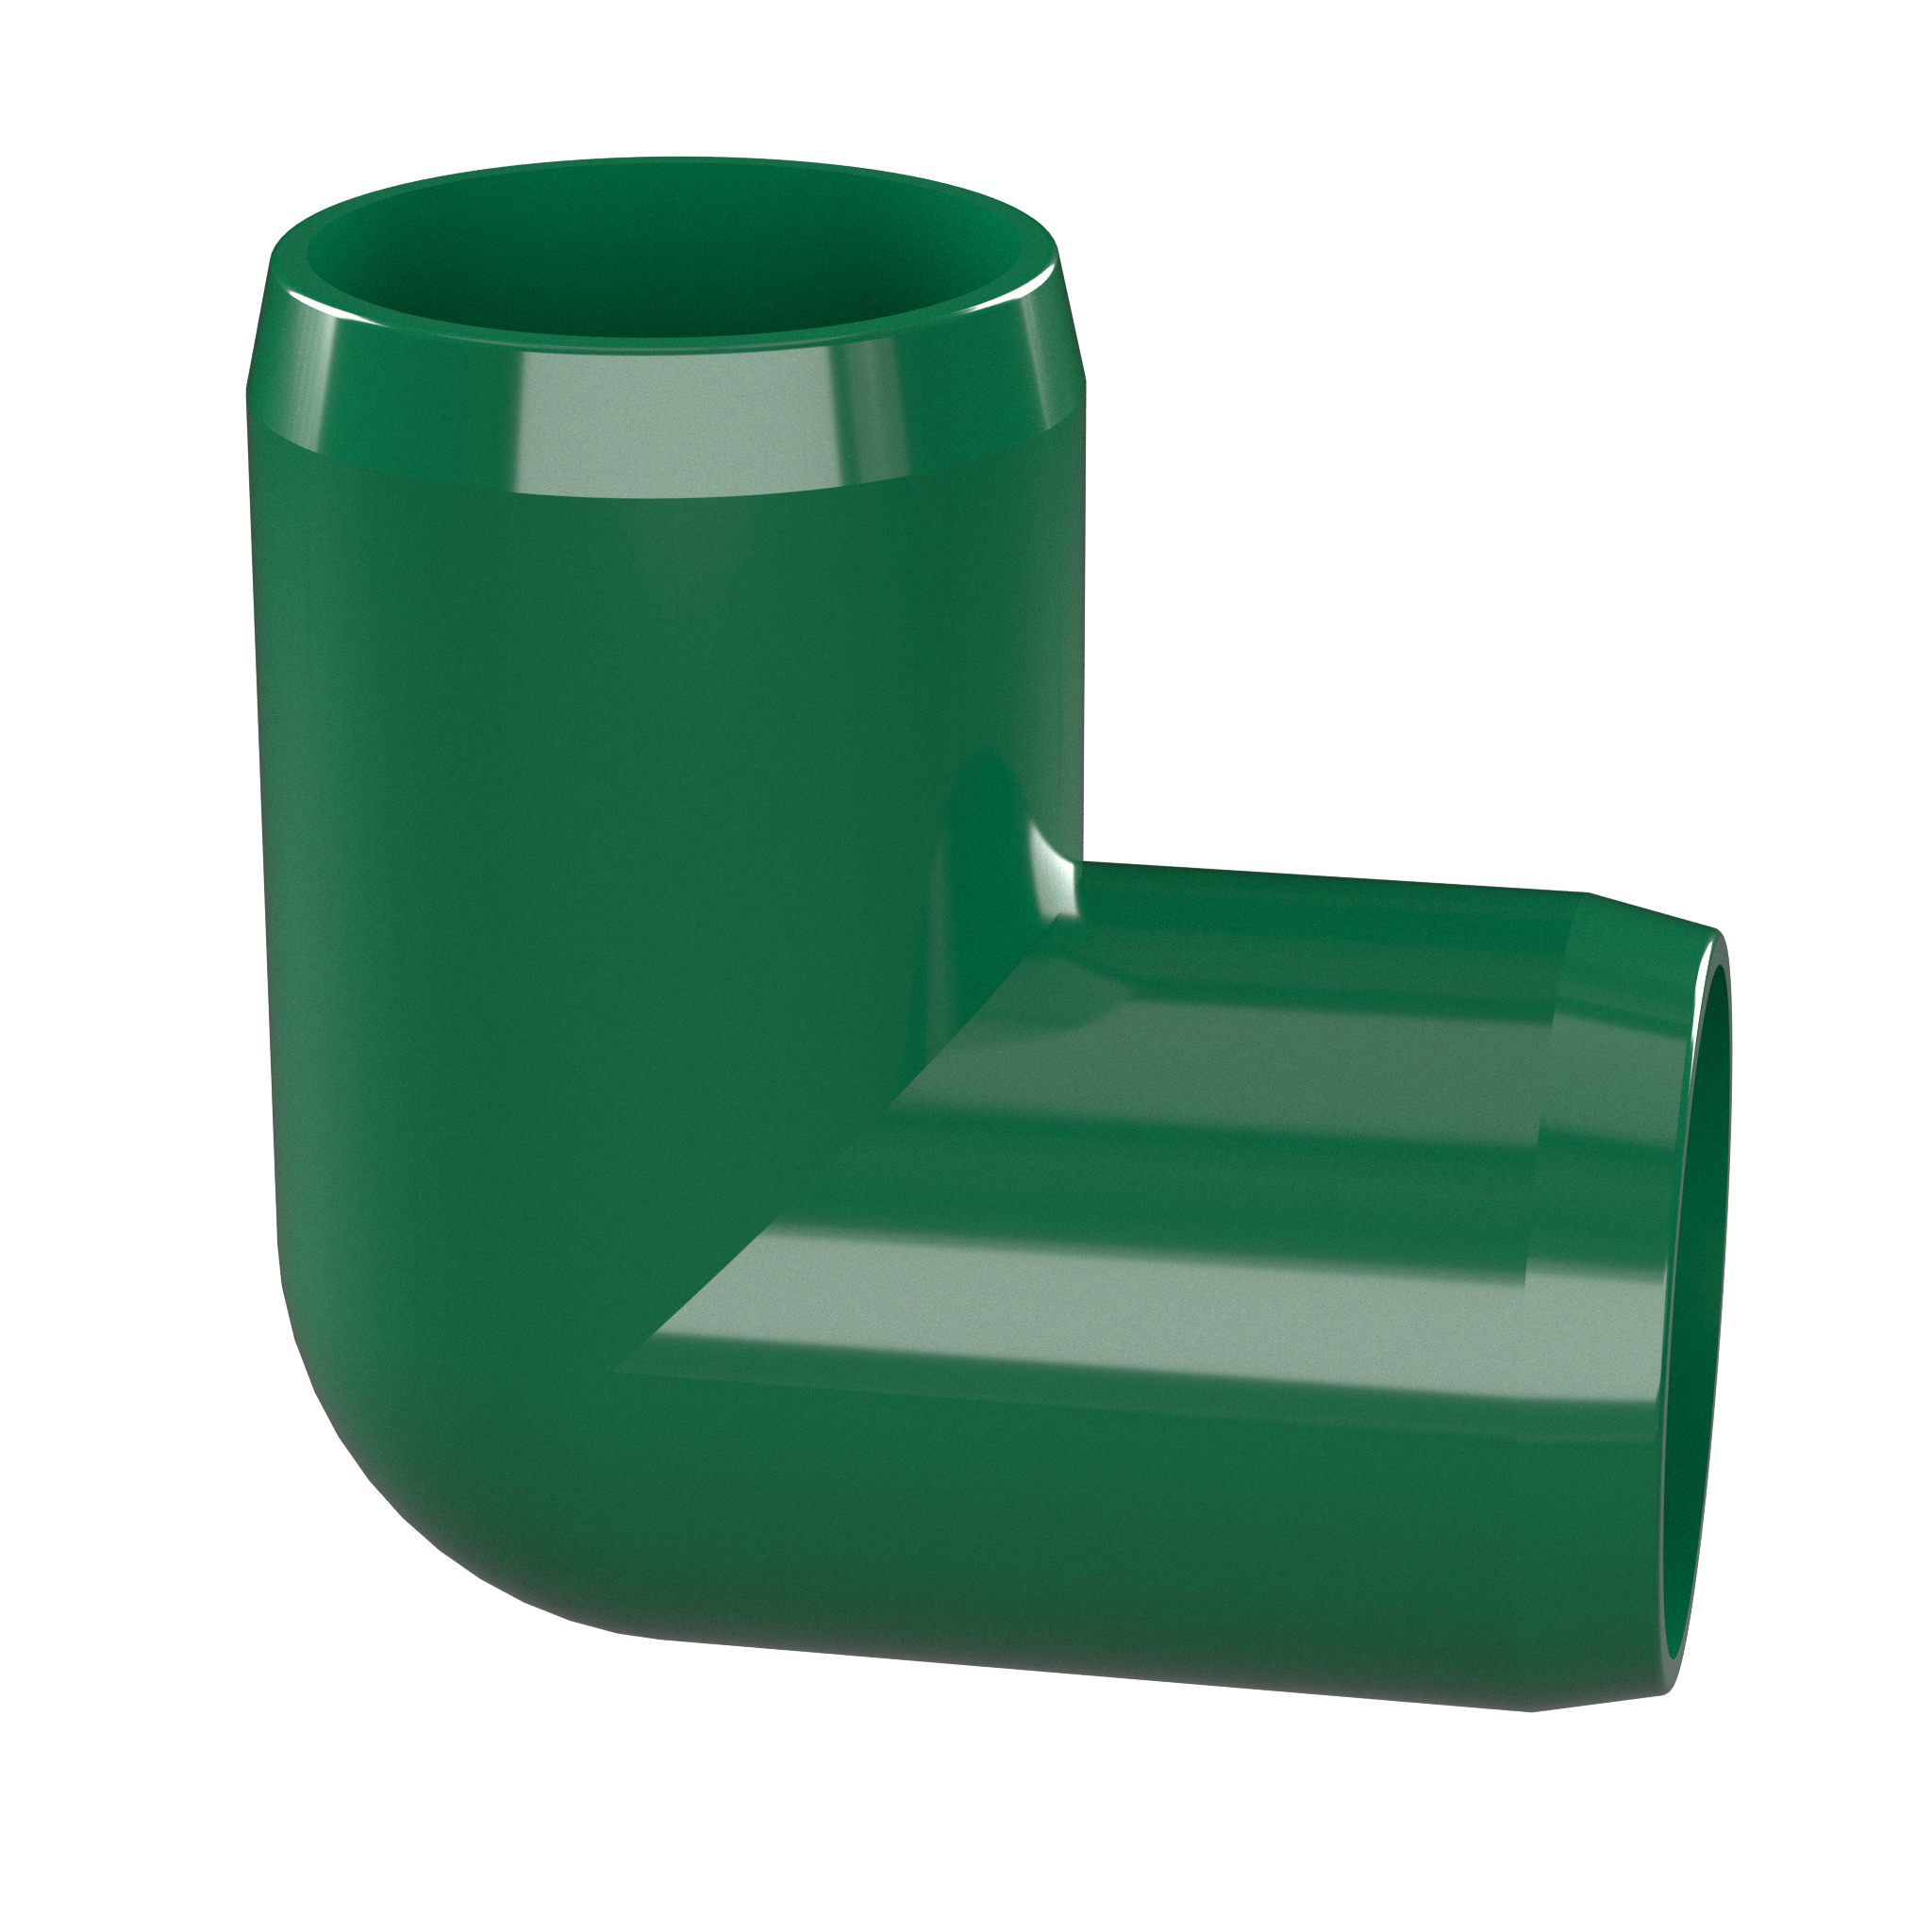 Furniture Grade FORMUFIT F01290E-GR-10 90 Degree Elbow PVC Fitting Pack of 10 1//2 Size Green